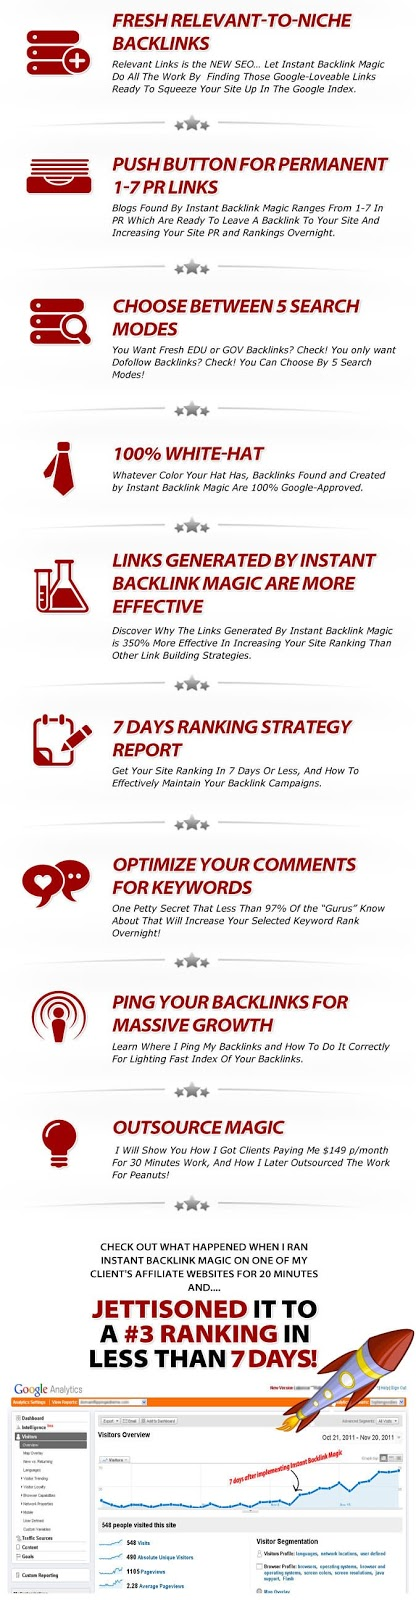 Instant Backlink Magic 2.1e Boost Your Site ranking